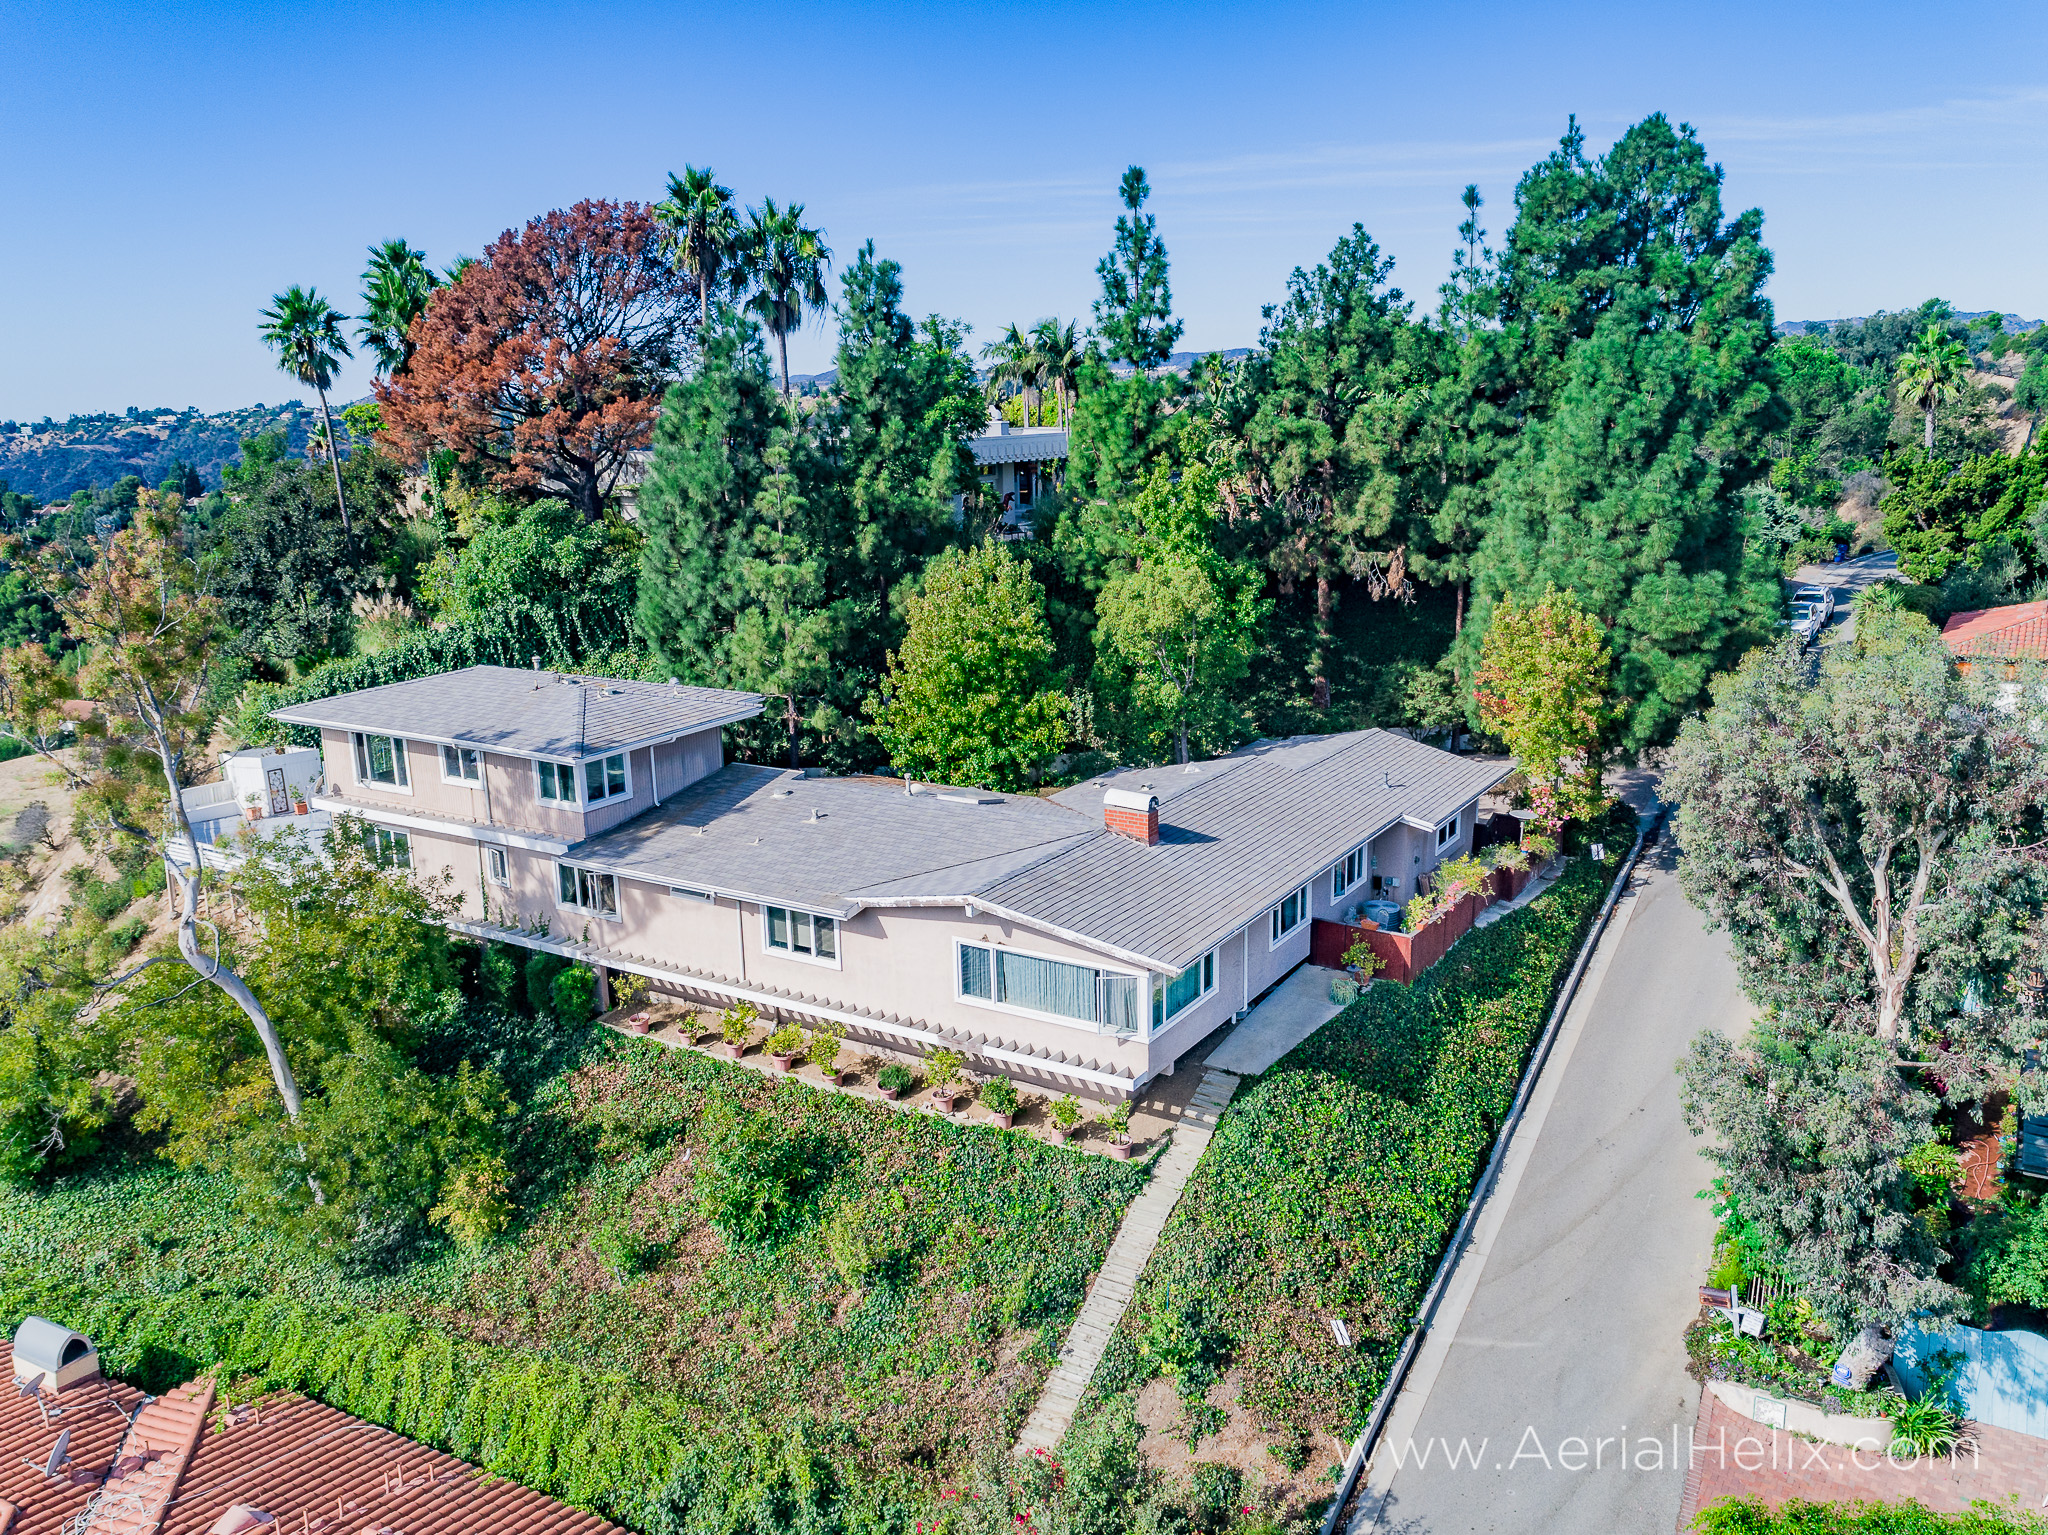 Mullholland Drive Aerial - HELIX Real Estate Aerial Photographer-10.jpg